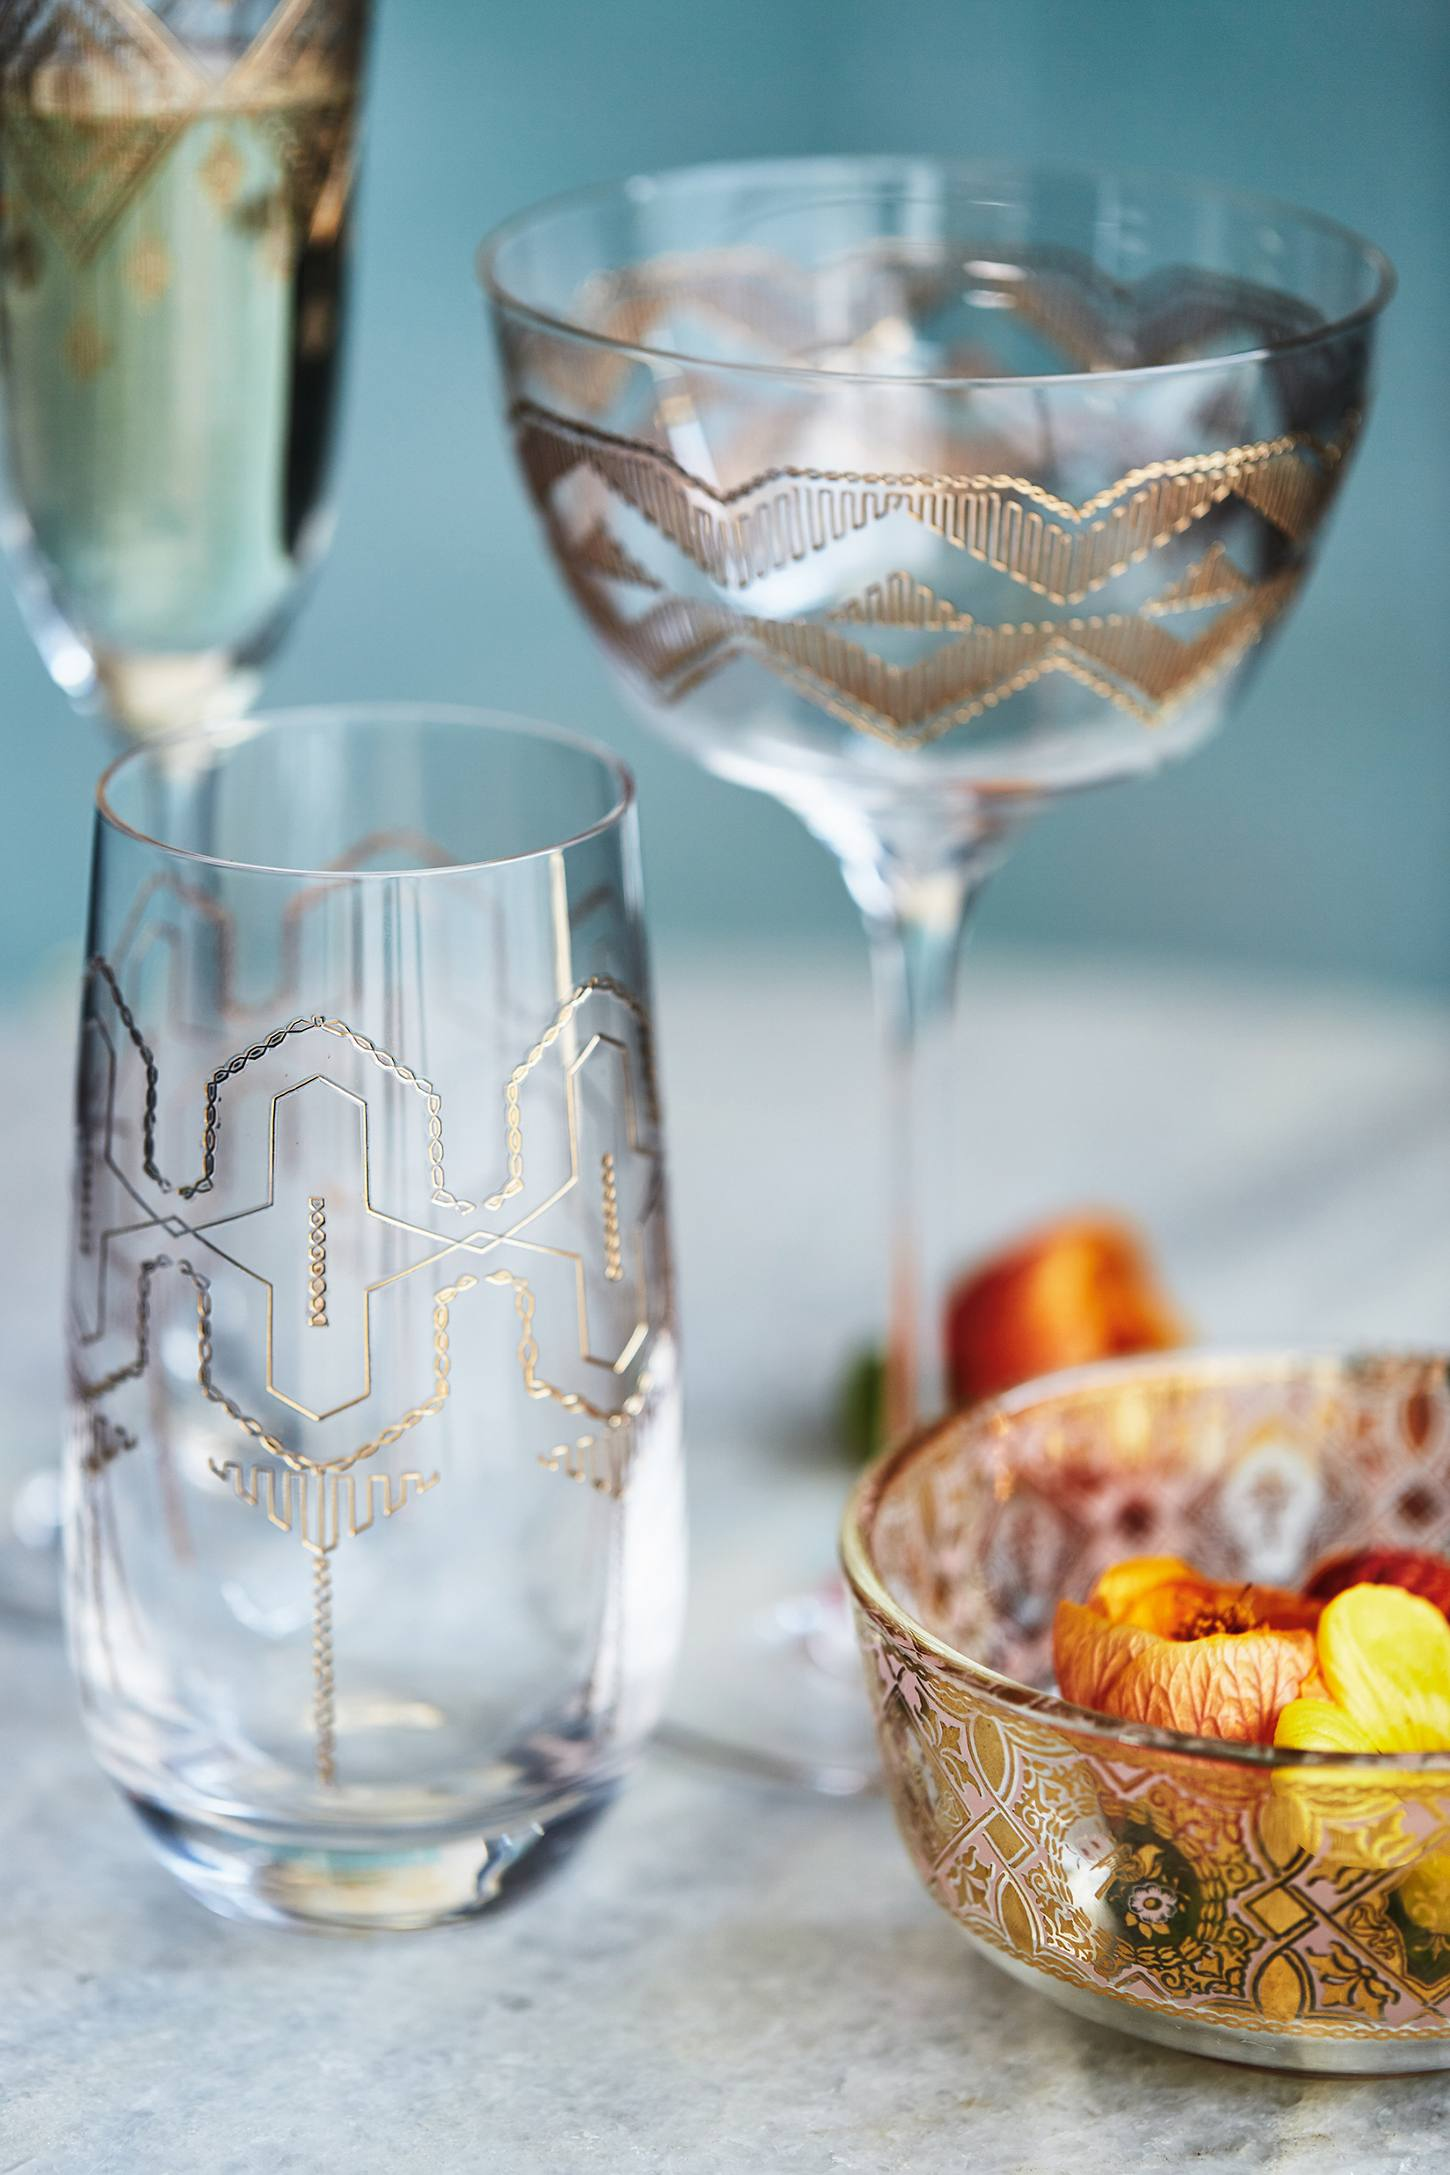 Glassware from Anthropologie